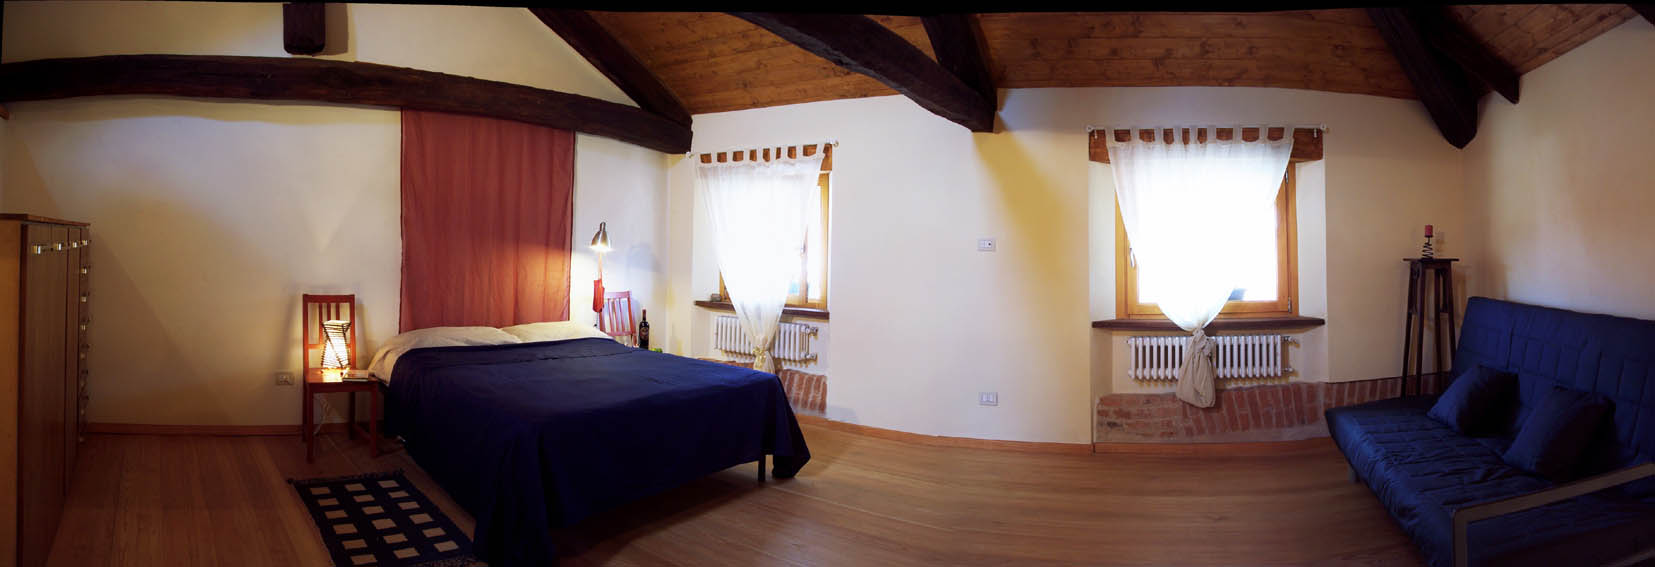 Casa Prosit, Asti, Italy, what are the safest areas or neighborhoods for hotels in Asti